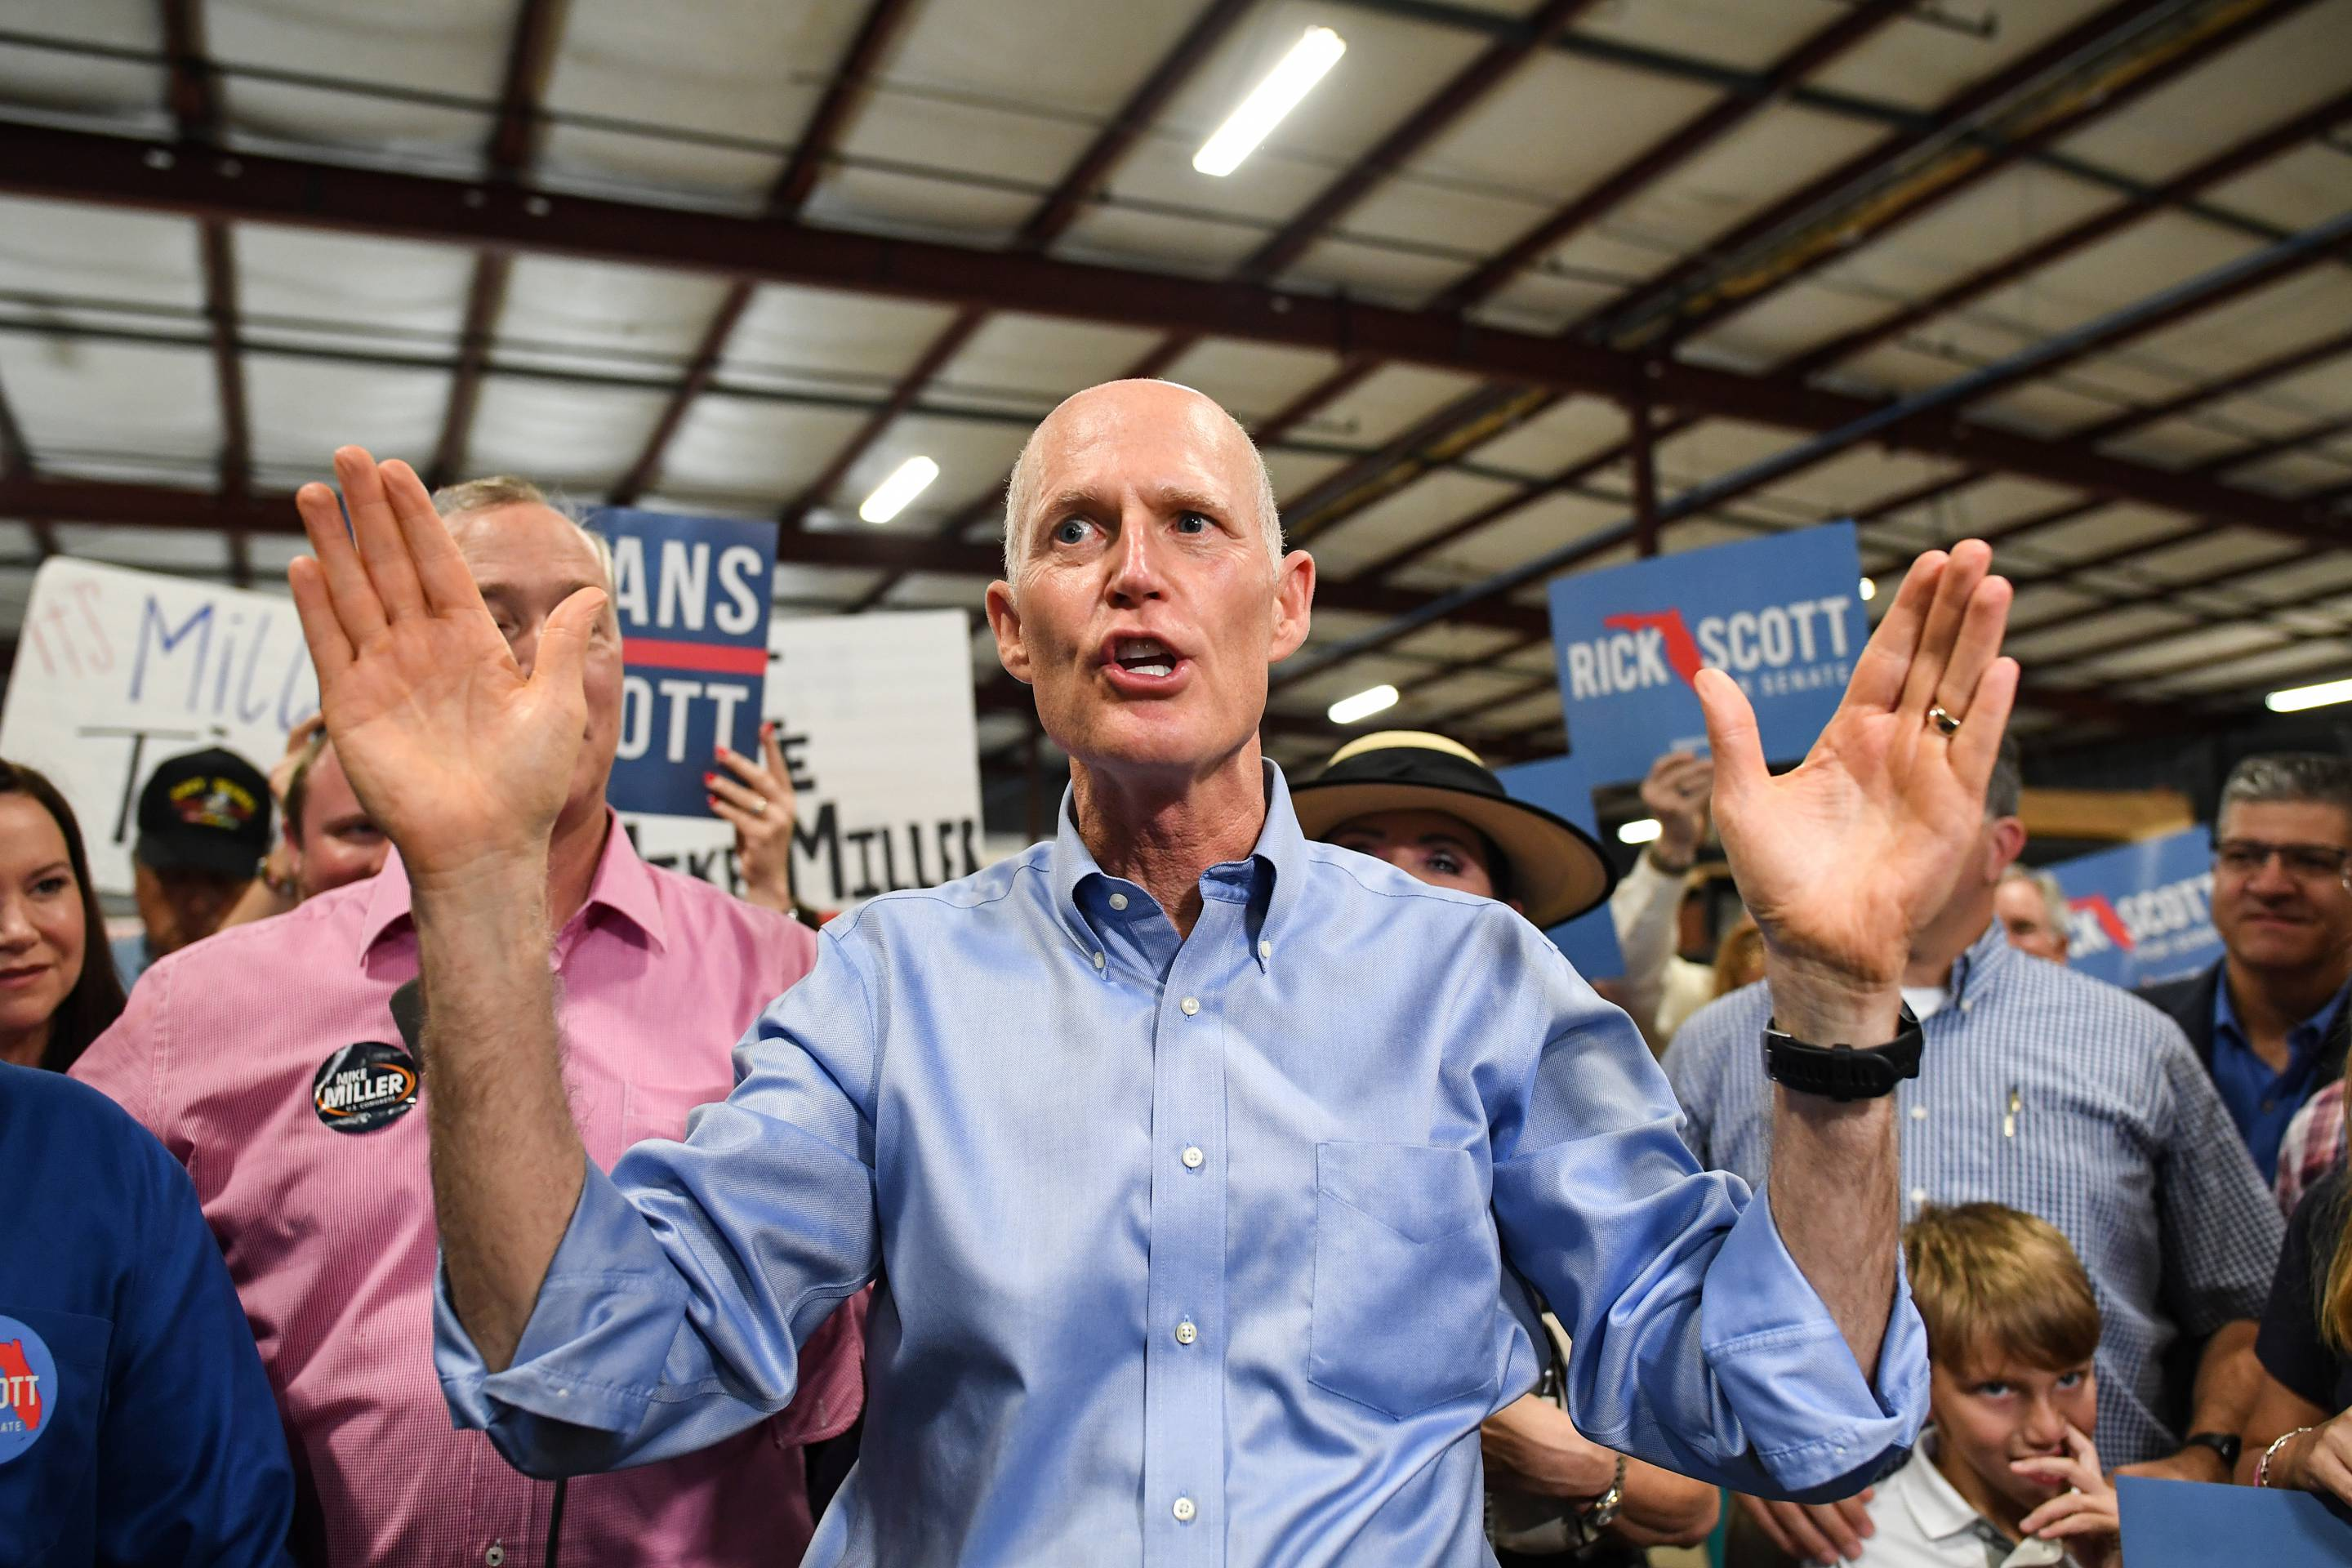 Florida Senate Candidate Rick Scott Attends Get Out Rally In Orlando